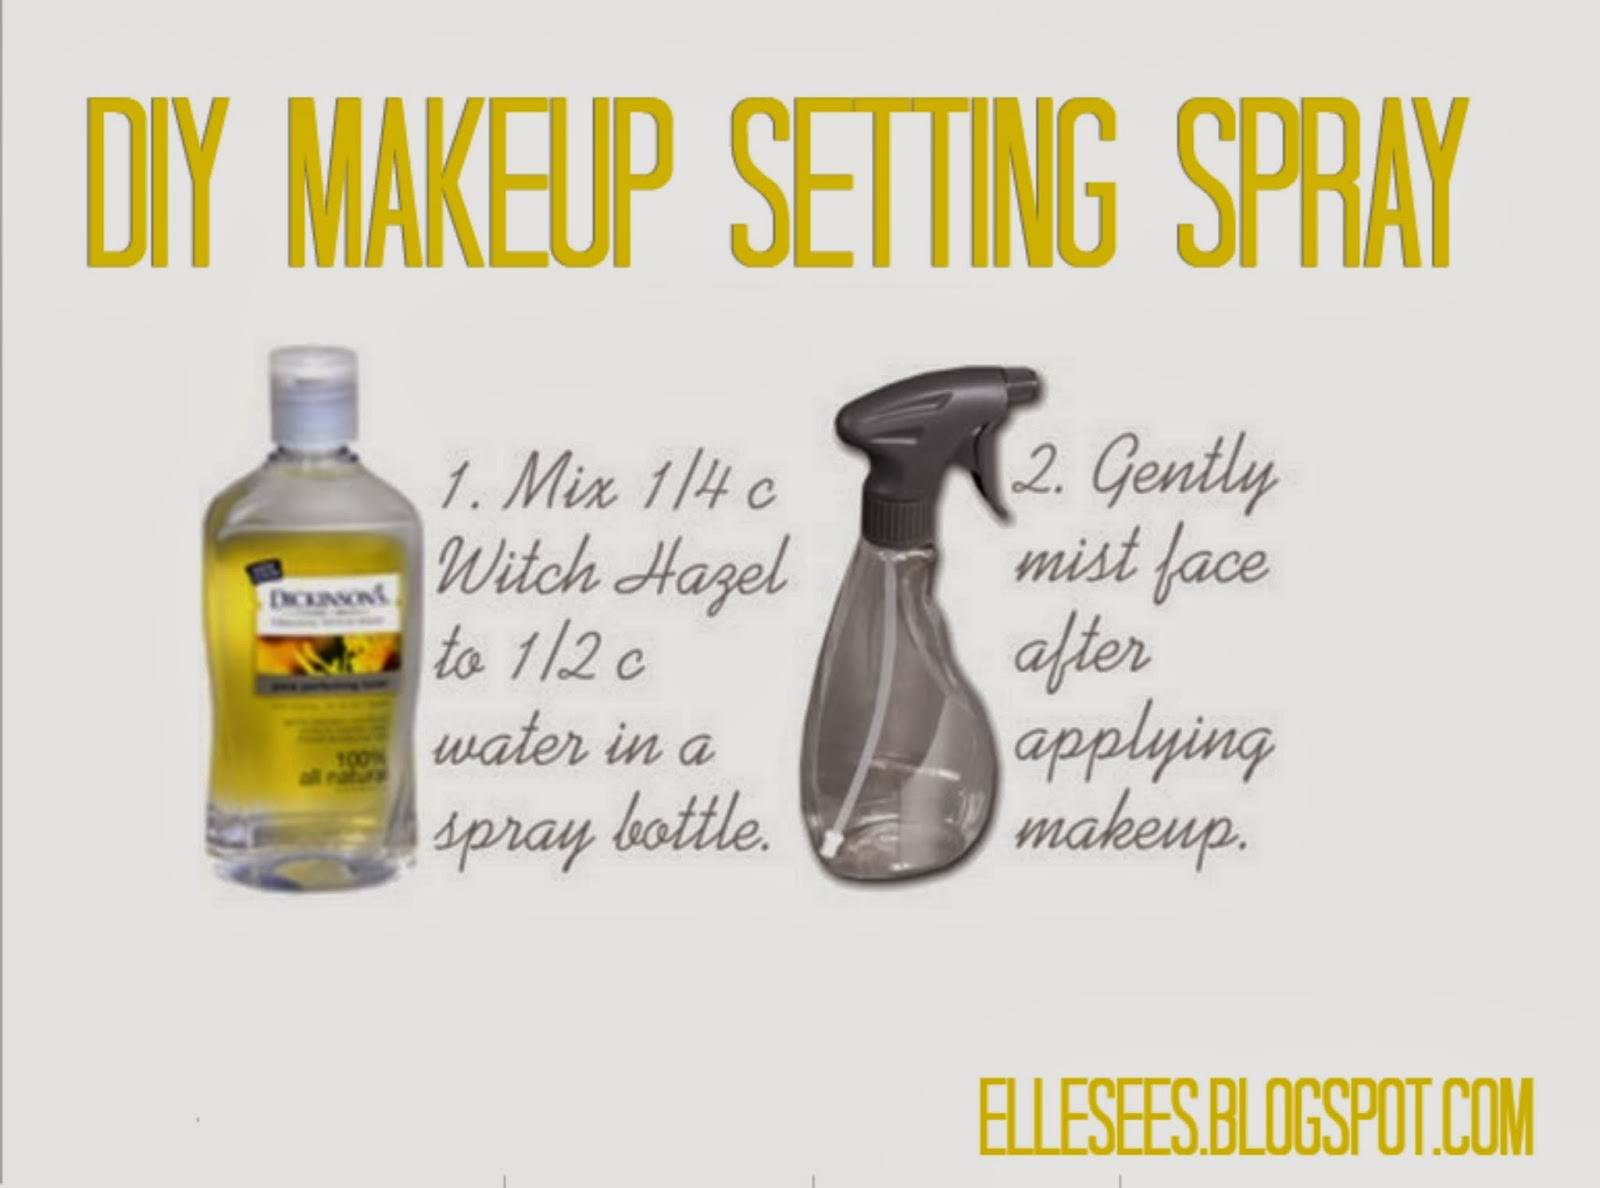 diy setting spray for skin sees in atlanta diy makeup setting